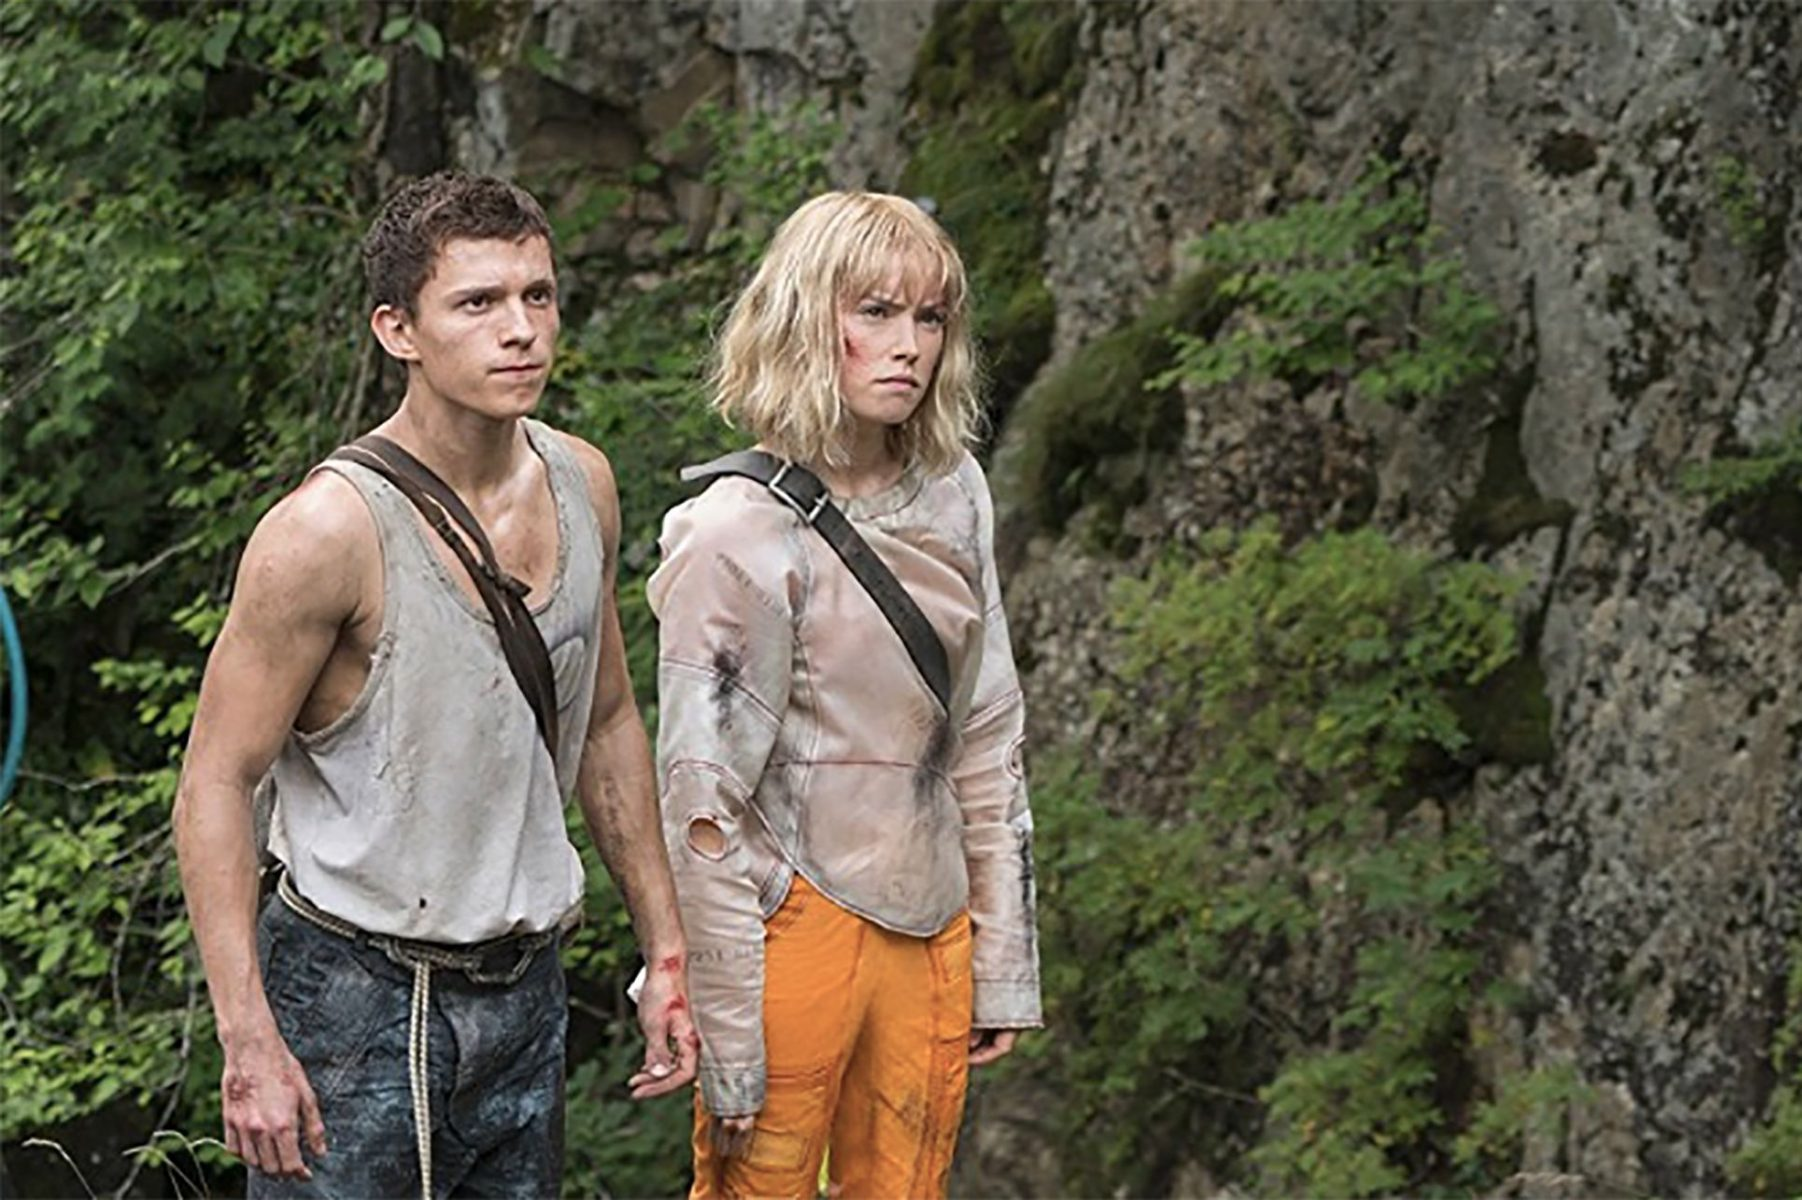 In an article about upcoming young adult film adaptations, a screenshot from Chaos Walking